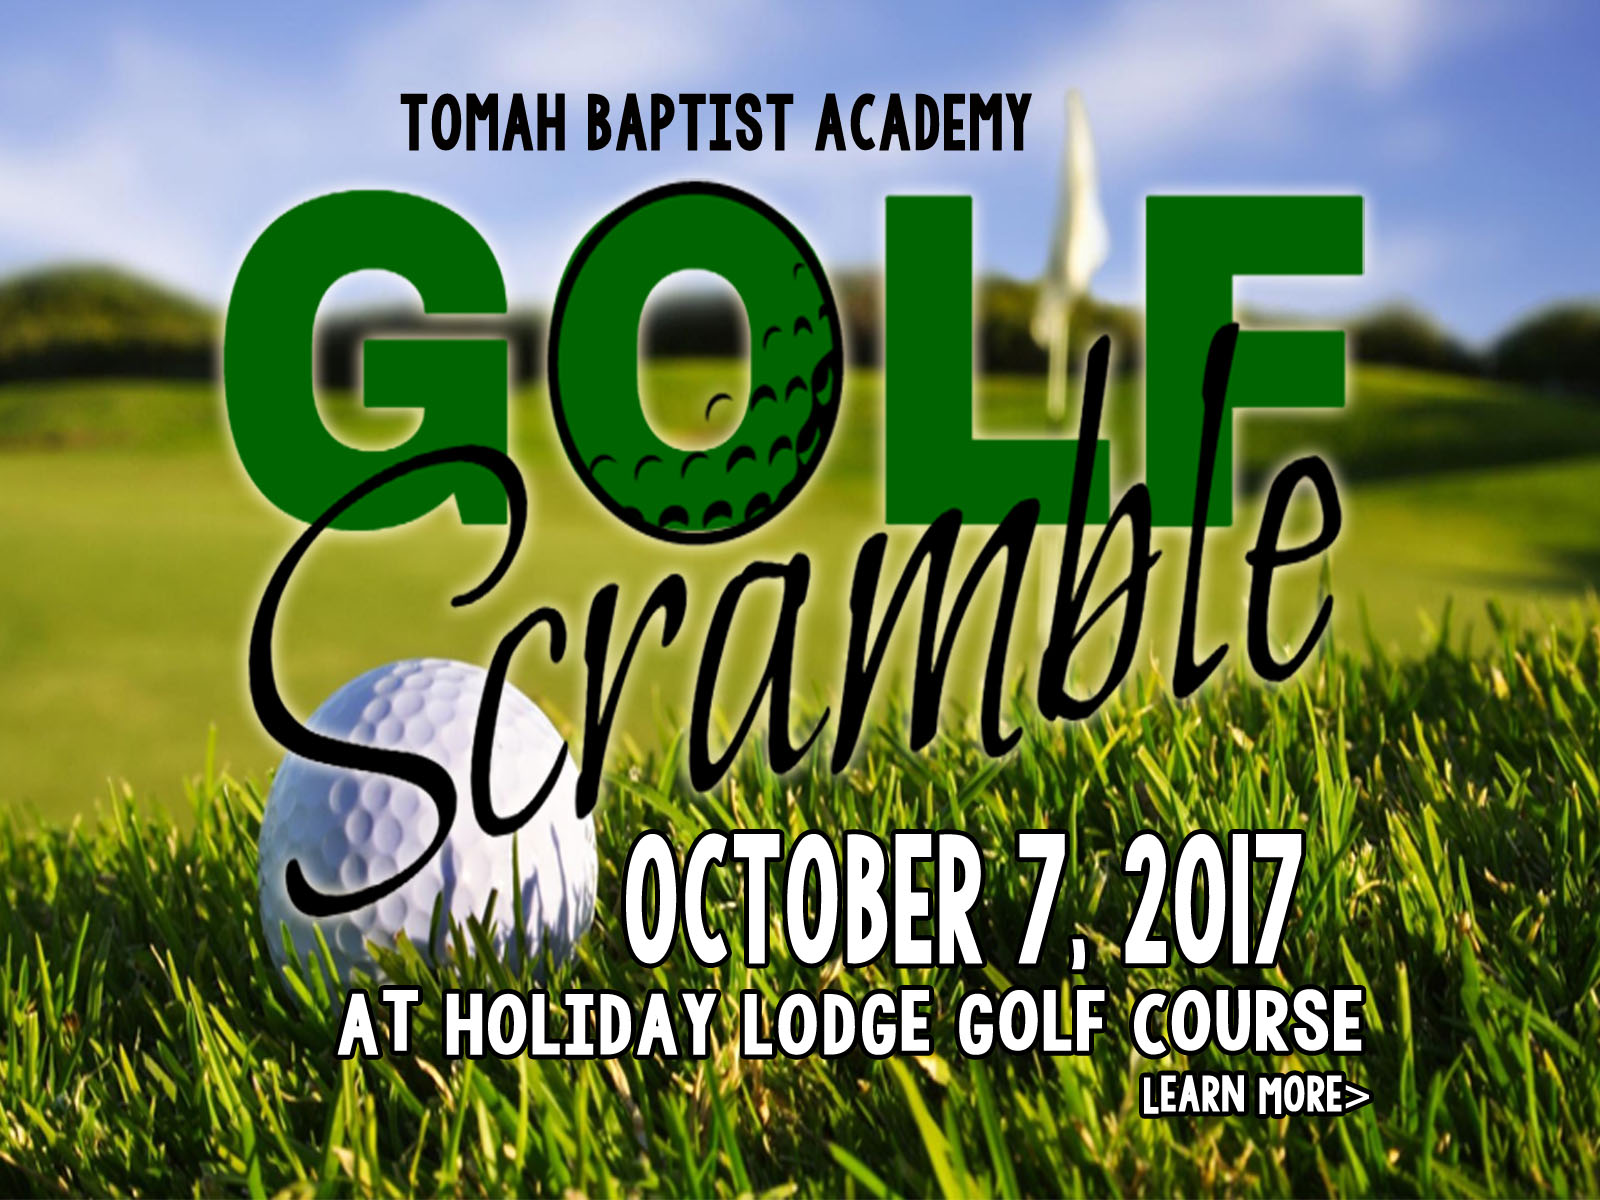 TBA Golf Scramble Benefit